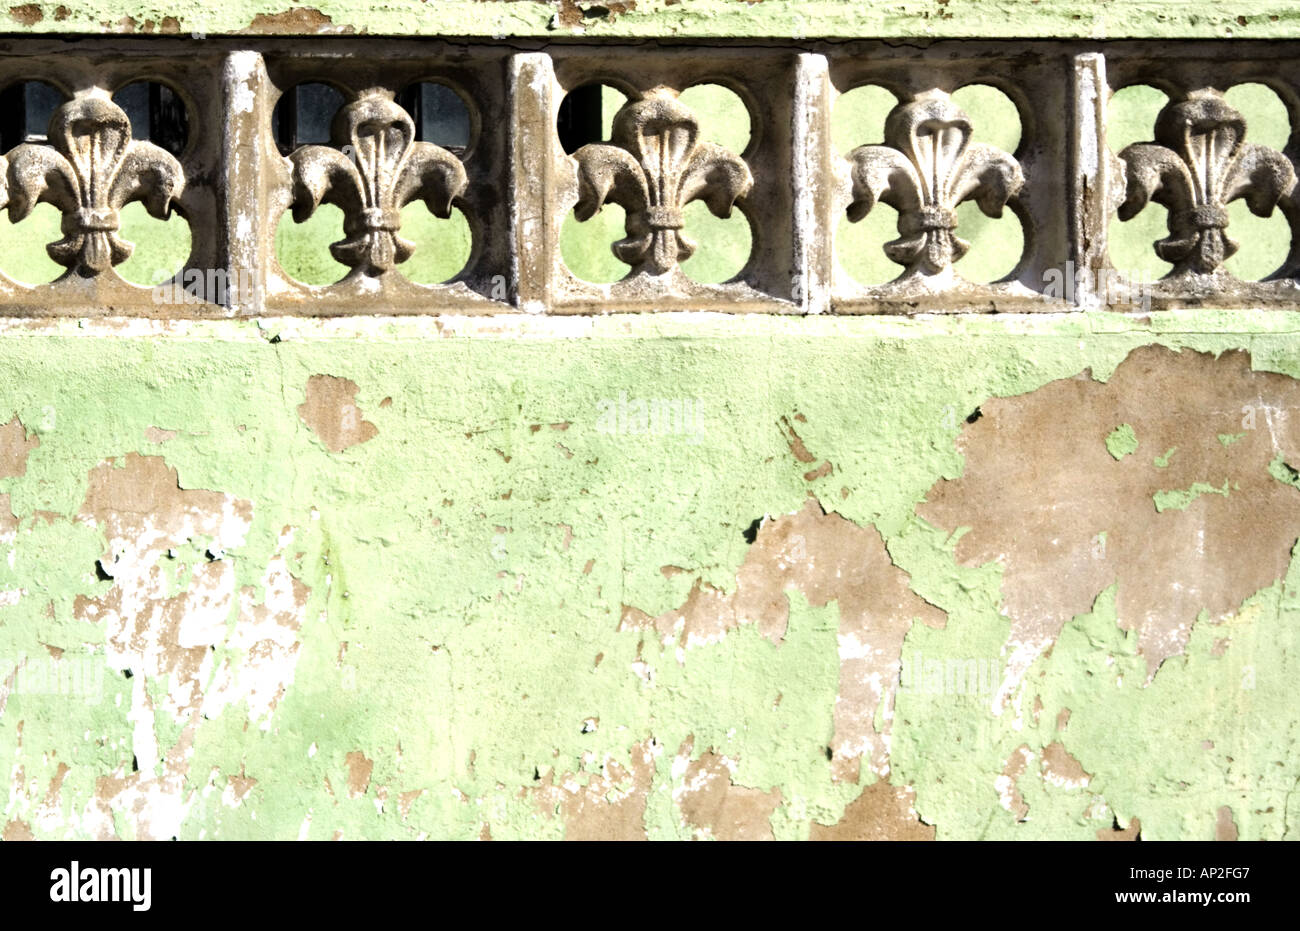 Fleur de Lis on wall Stock Photo: 8944966 - Alamy